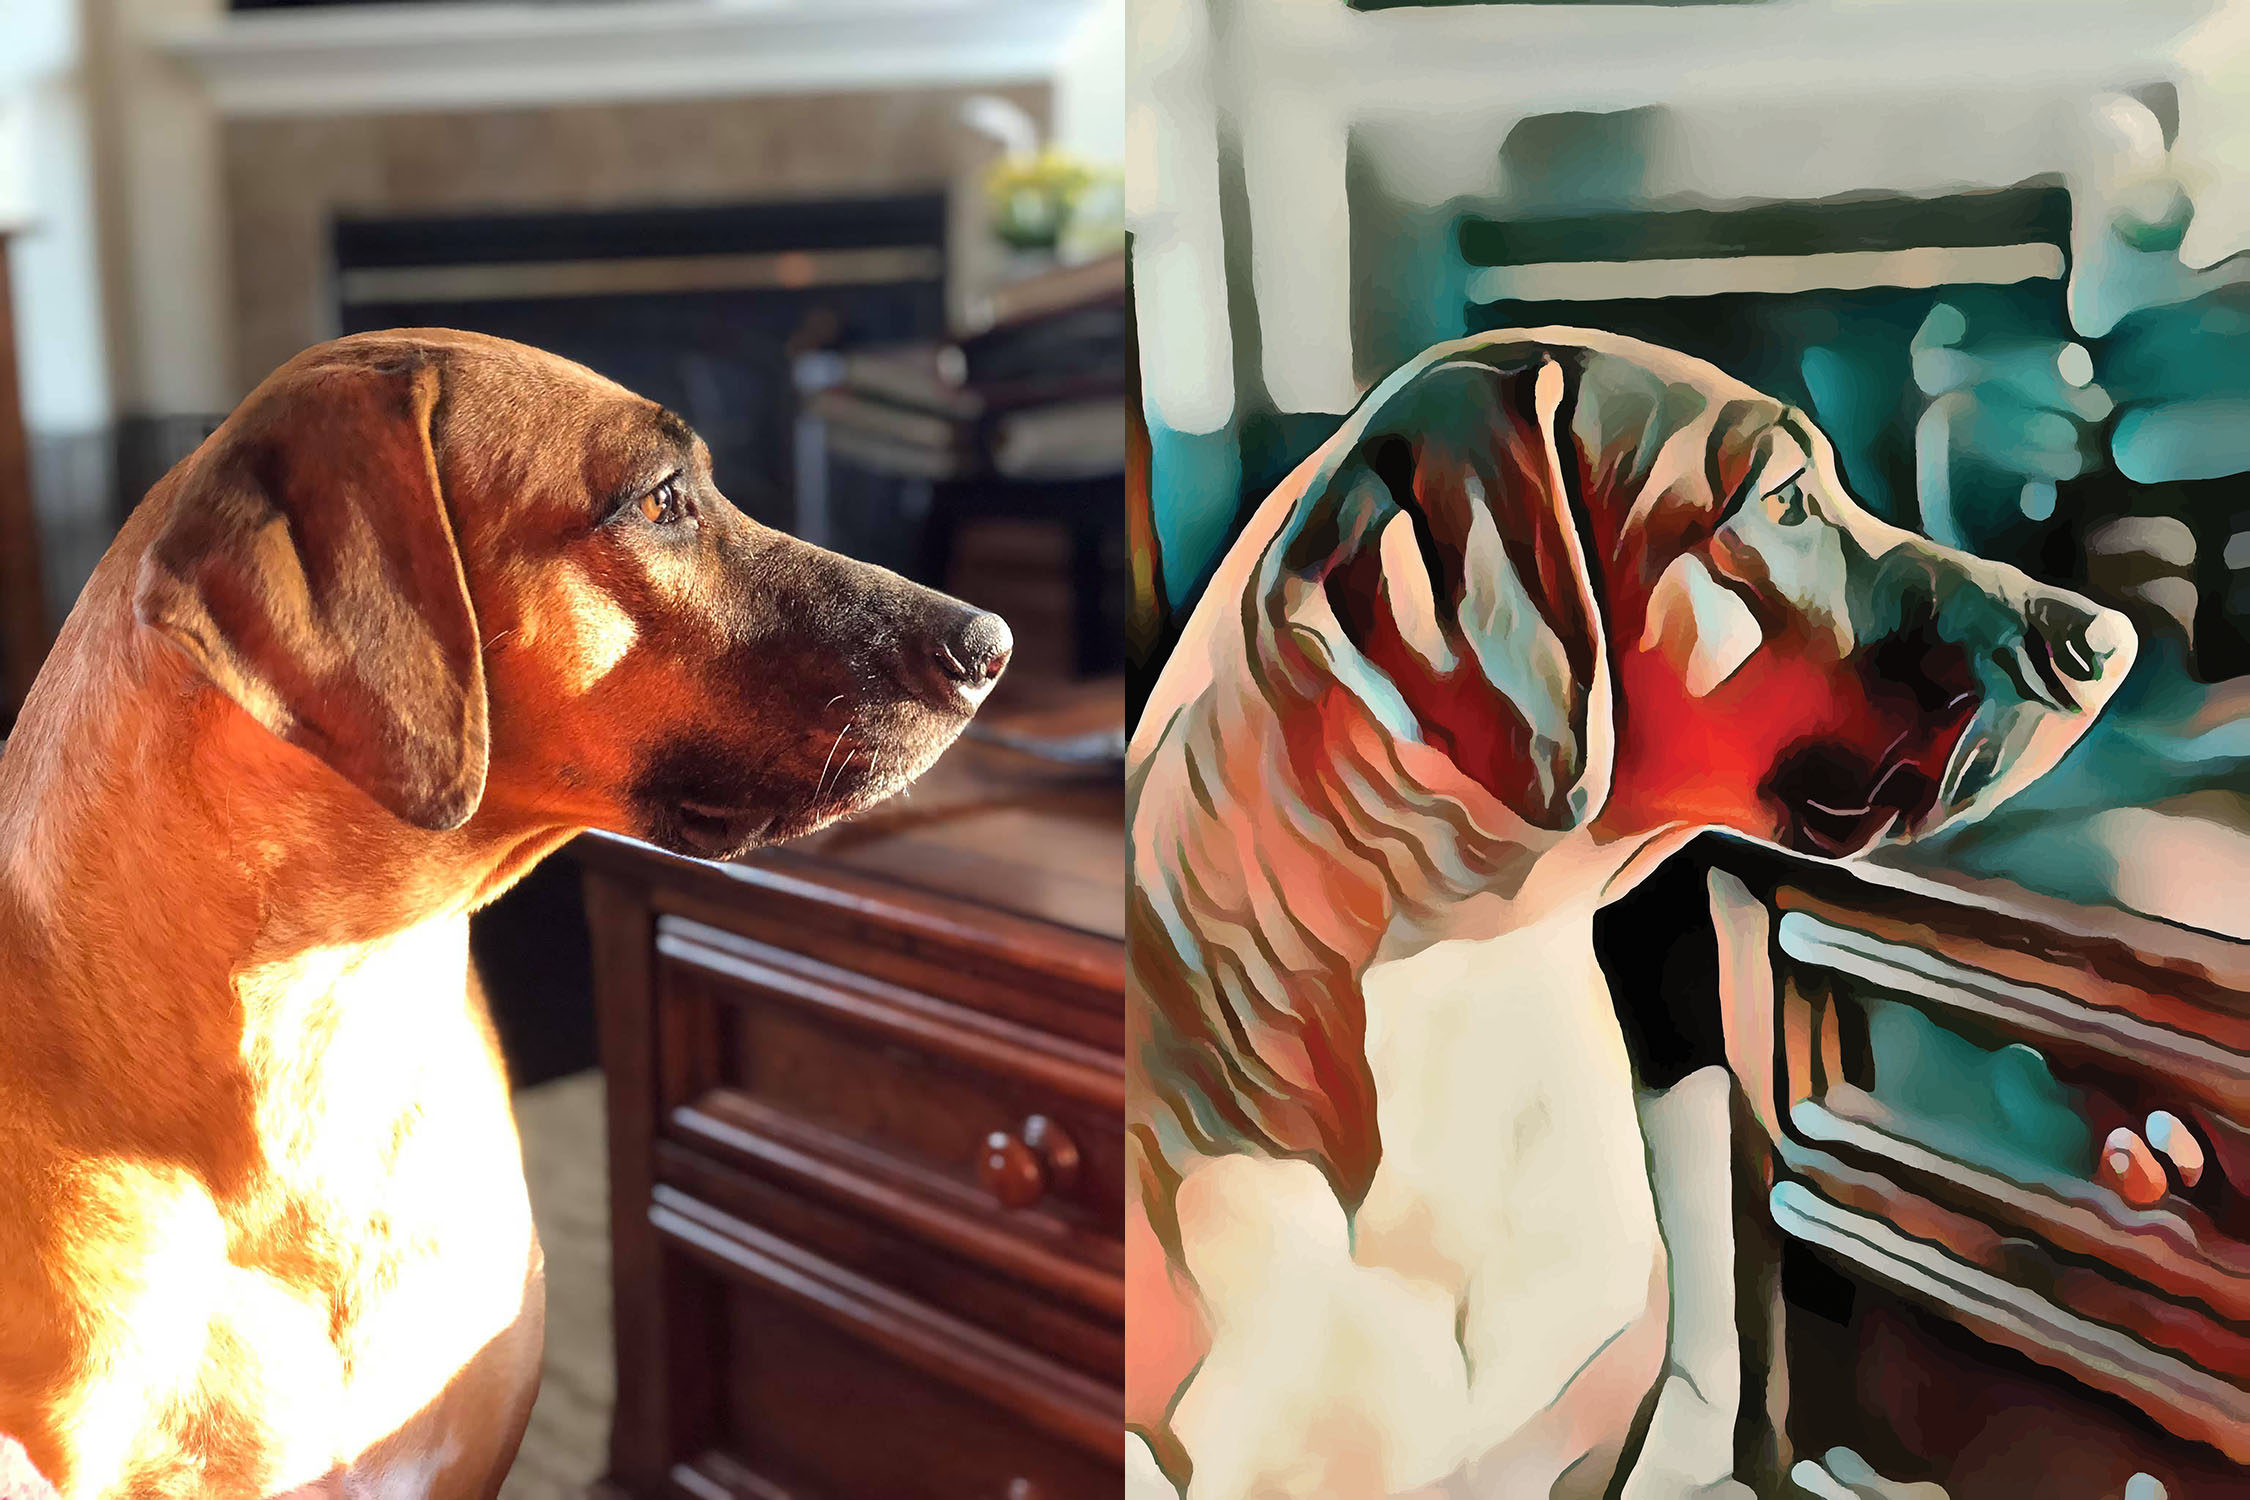 Before and after stylized image of a brown dog in profile